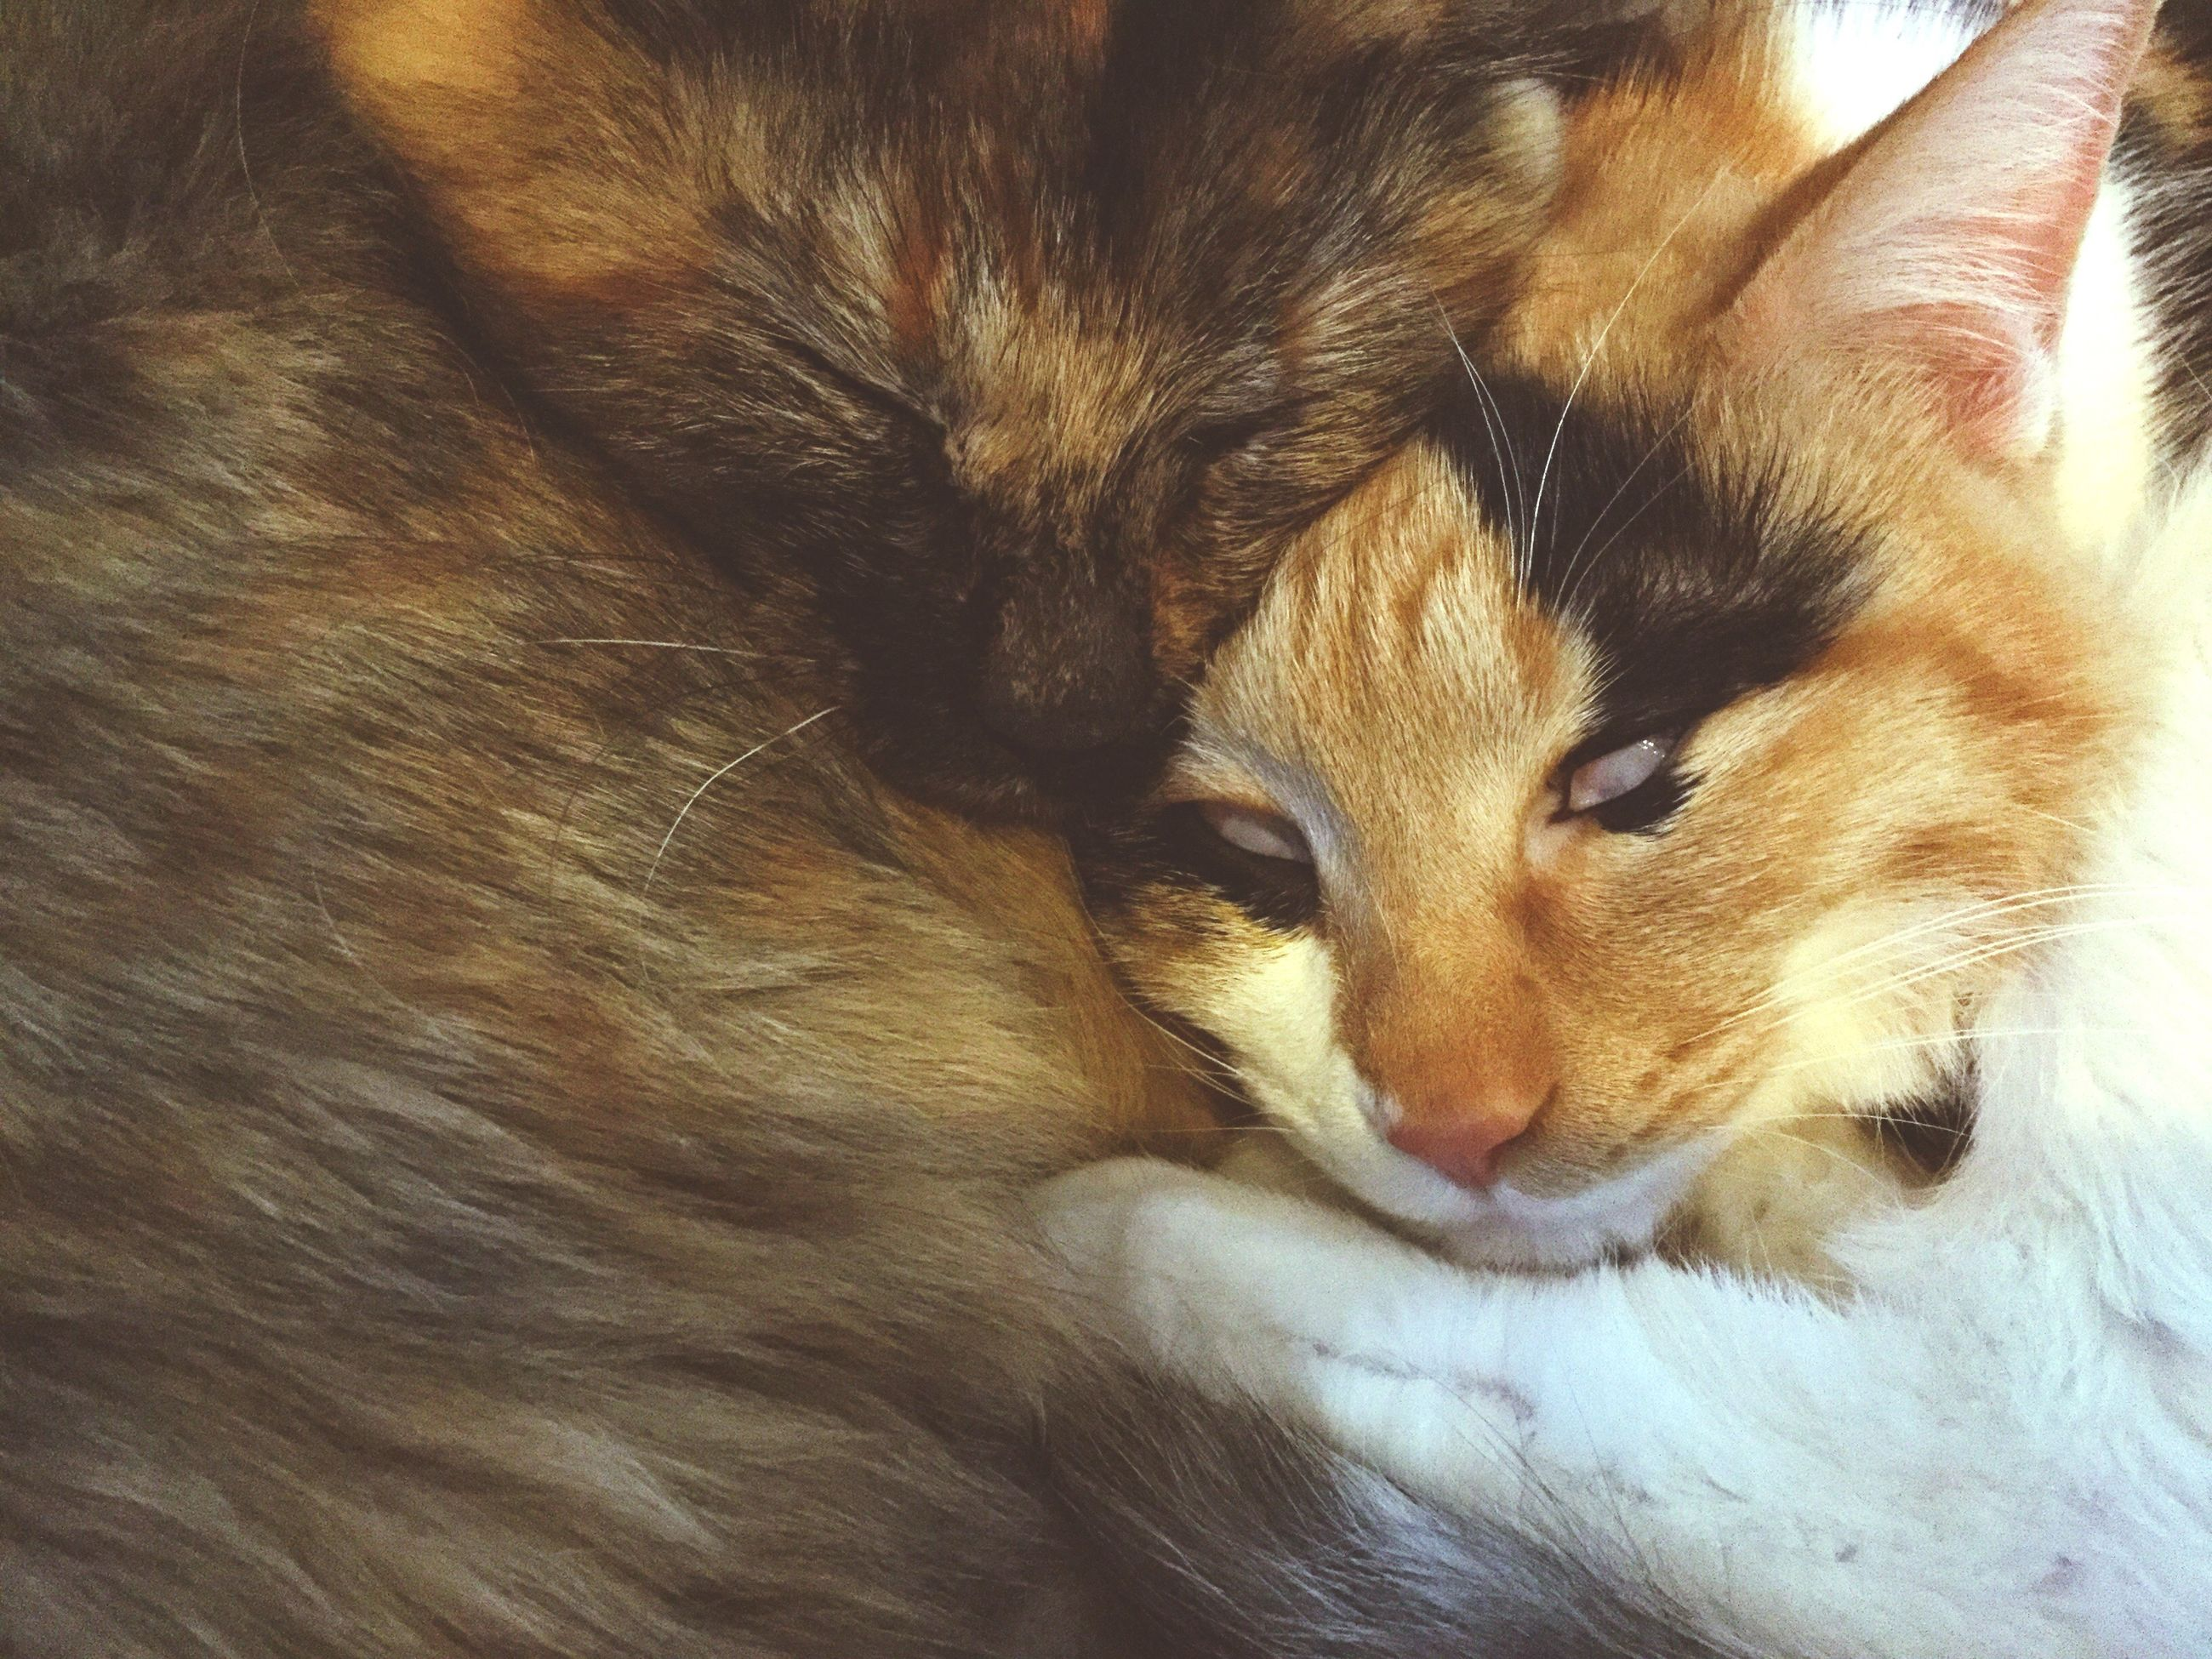 animal themes, mammal, domestic animals, pets, one animal, domestic cat, no people, feline, close-up, indoors, day